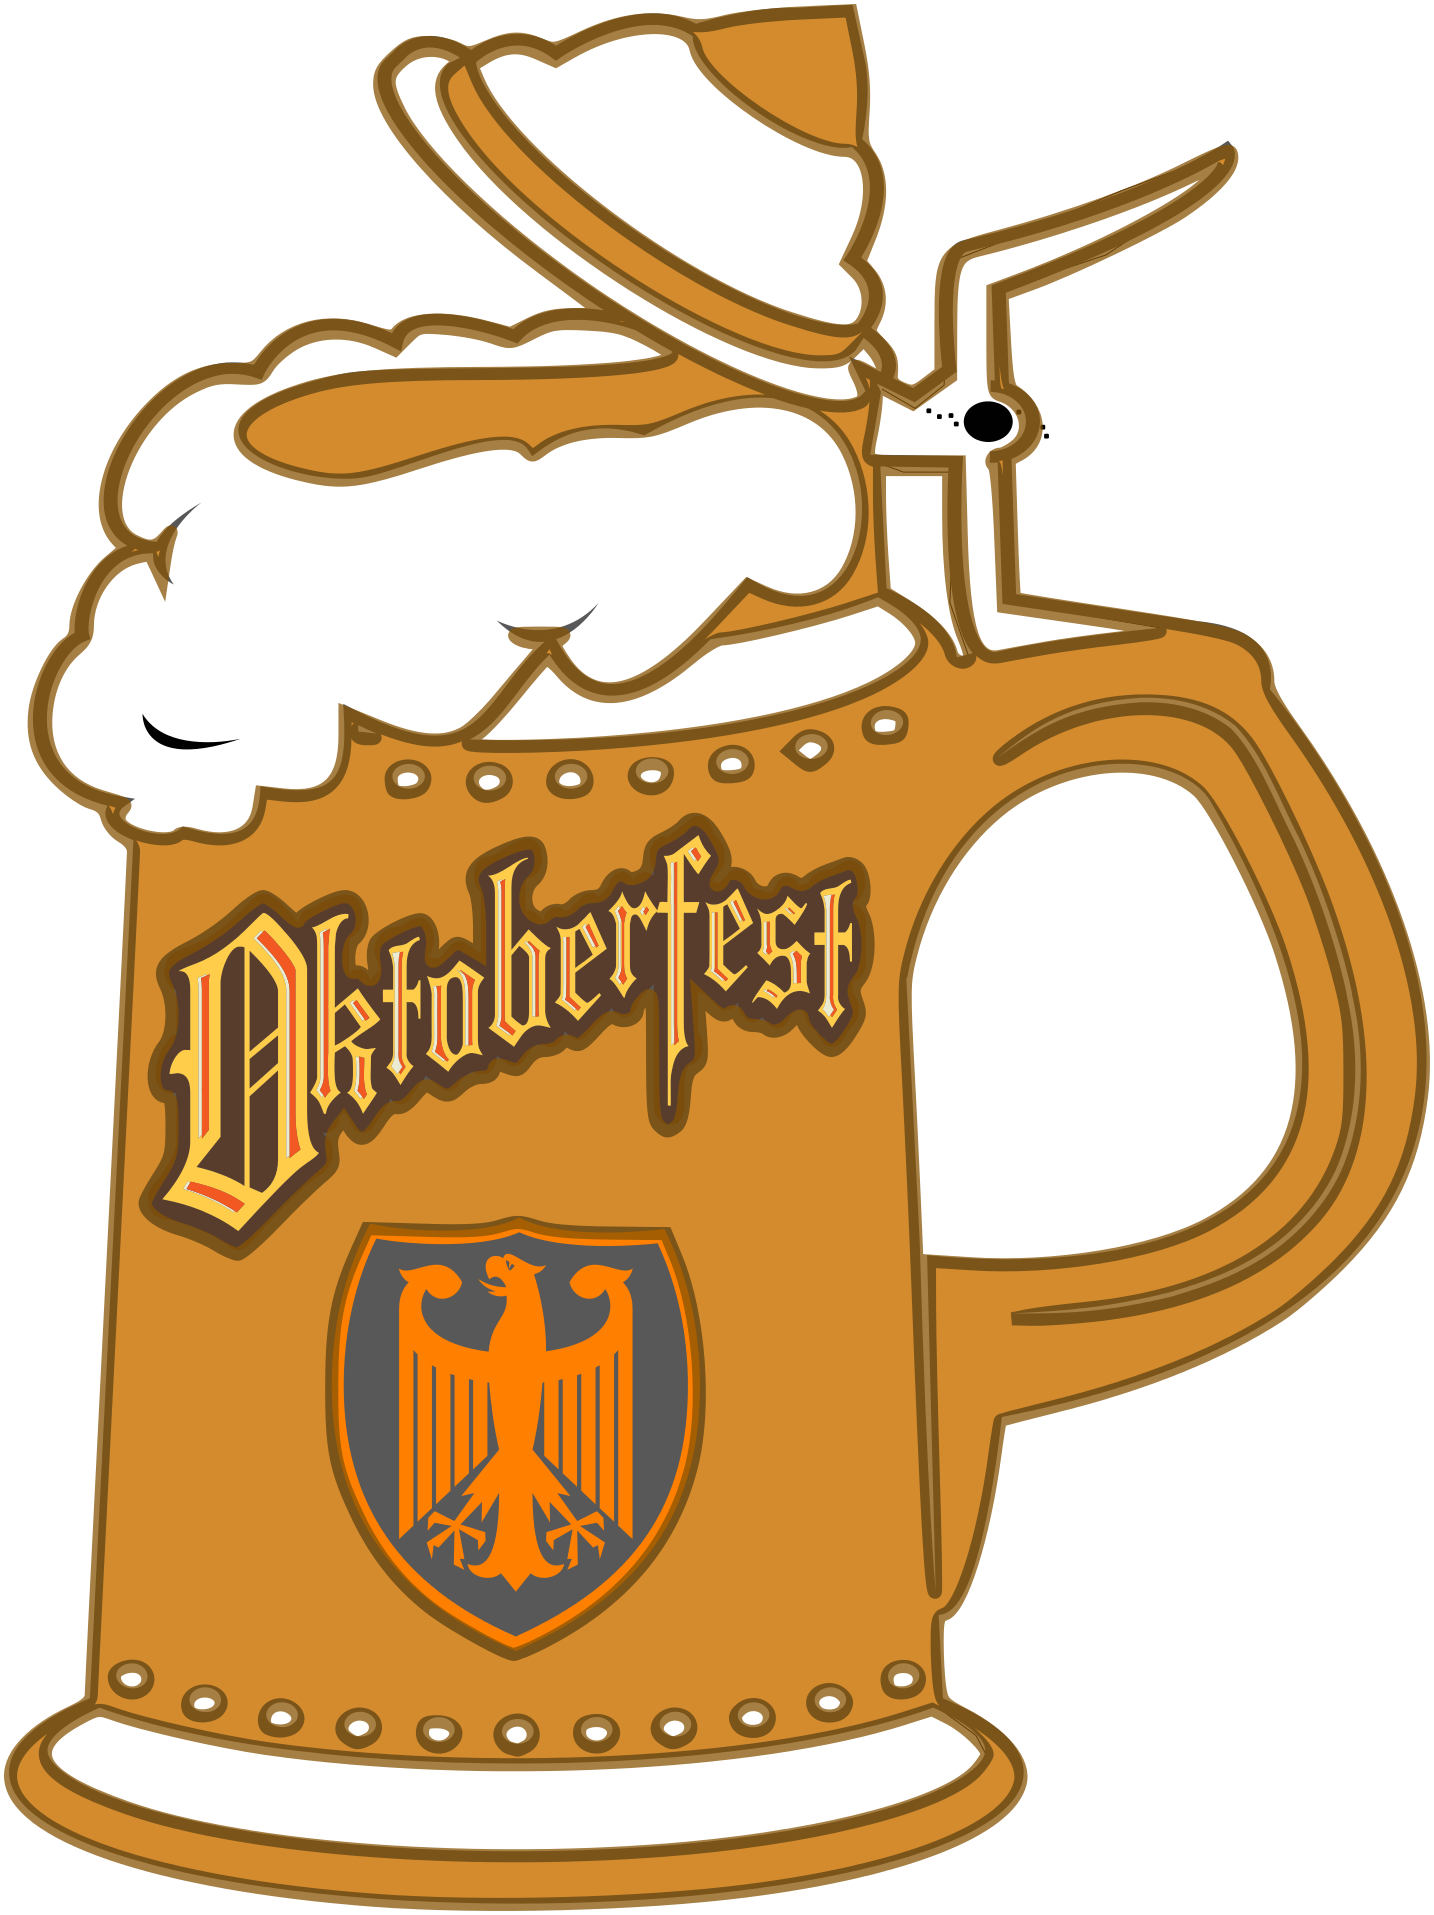 Free Oktoberfest Art, Download Free Clip Art, Free Clip Art on.